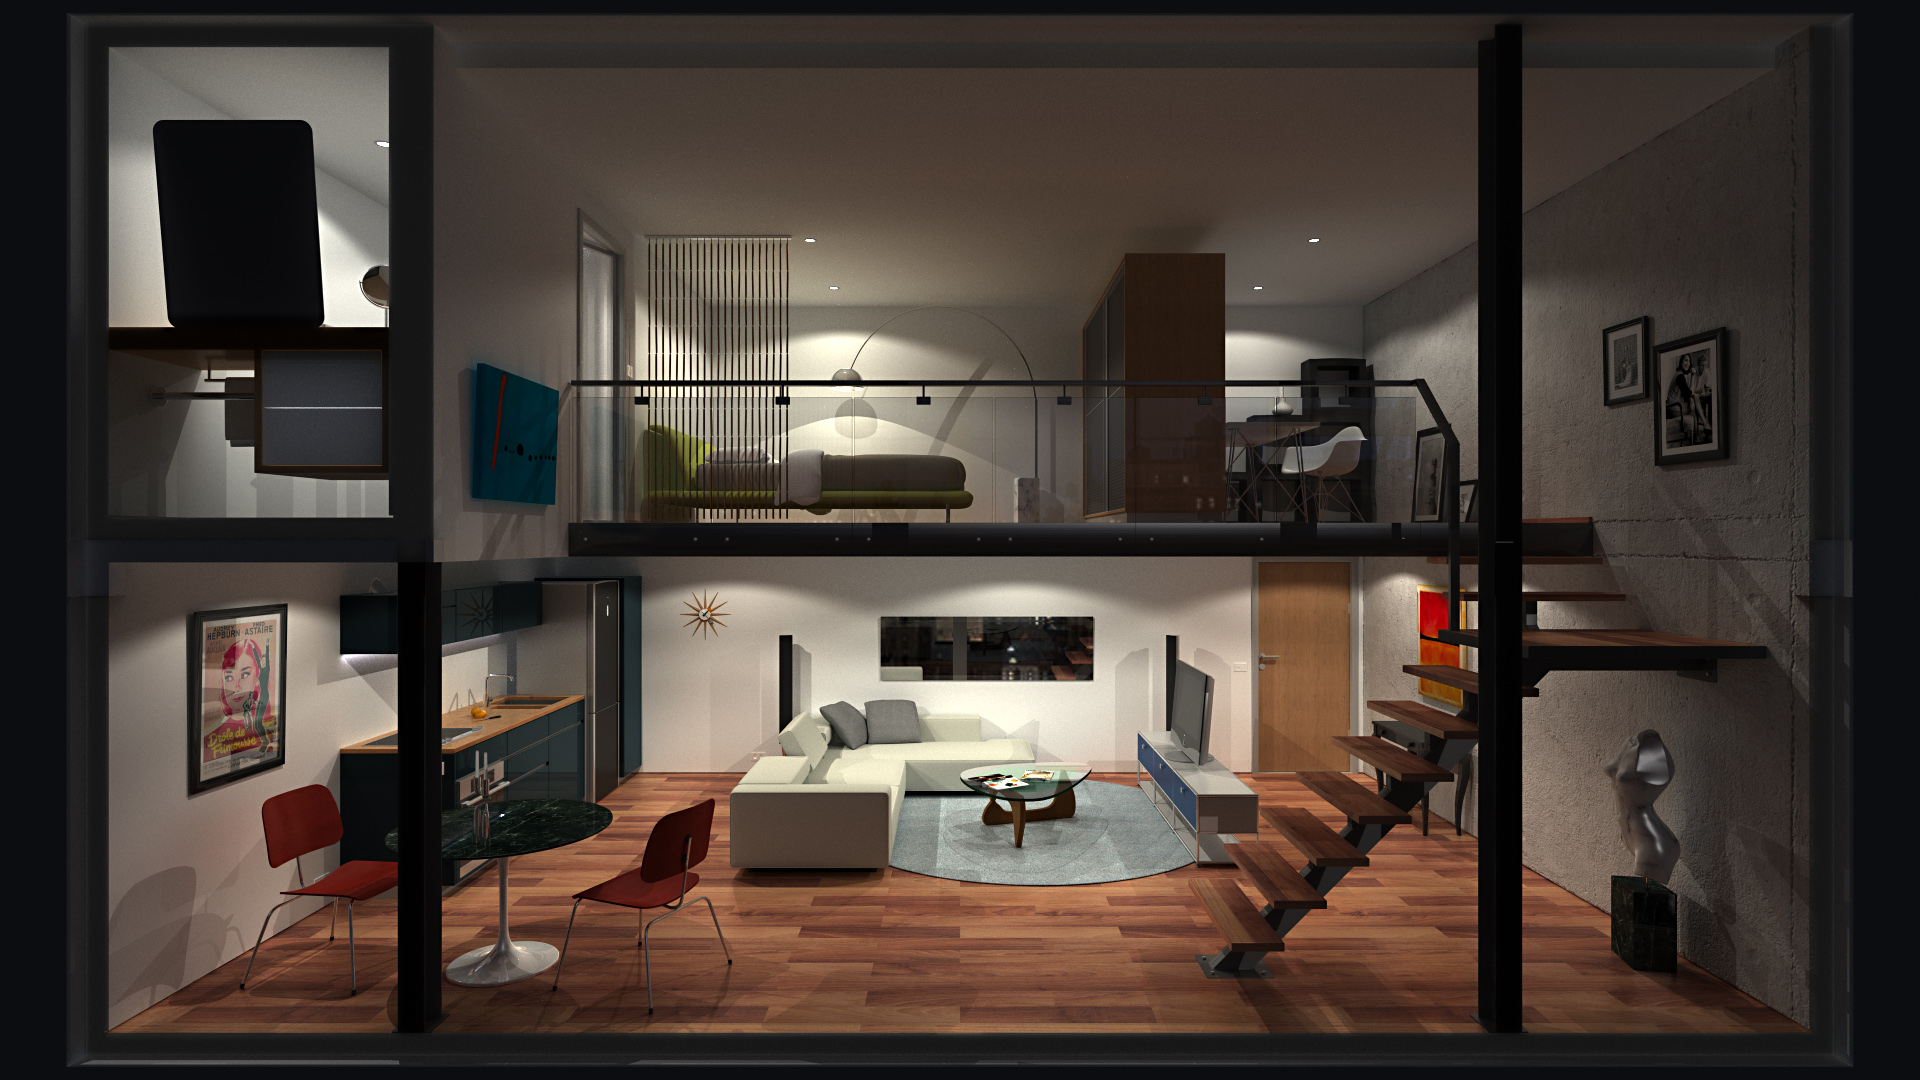 Studio House Apartments